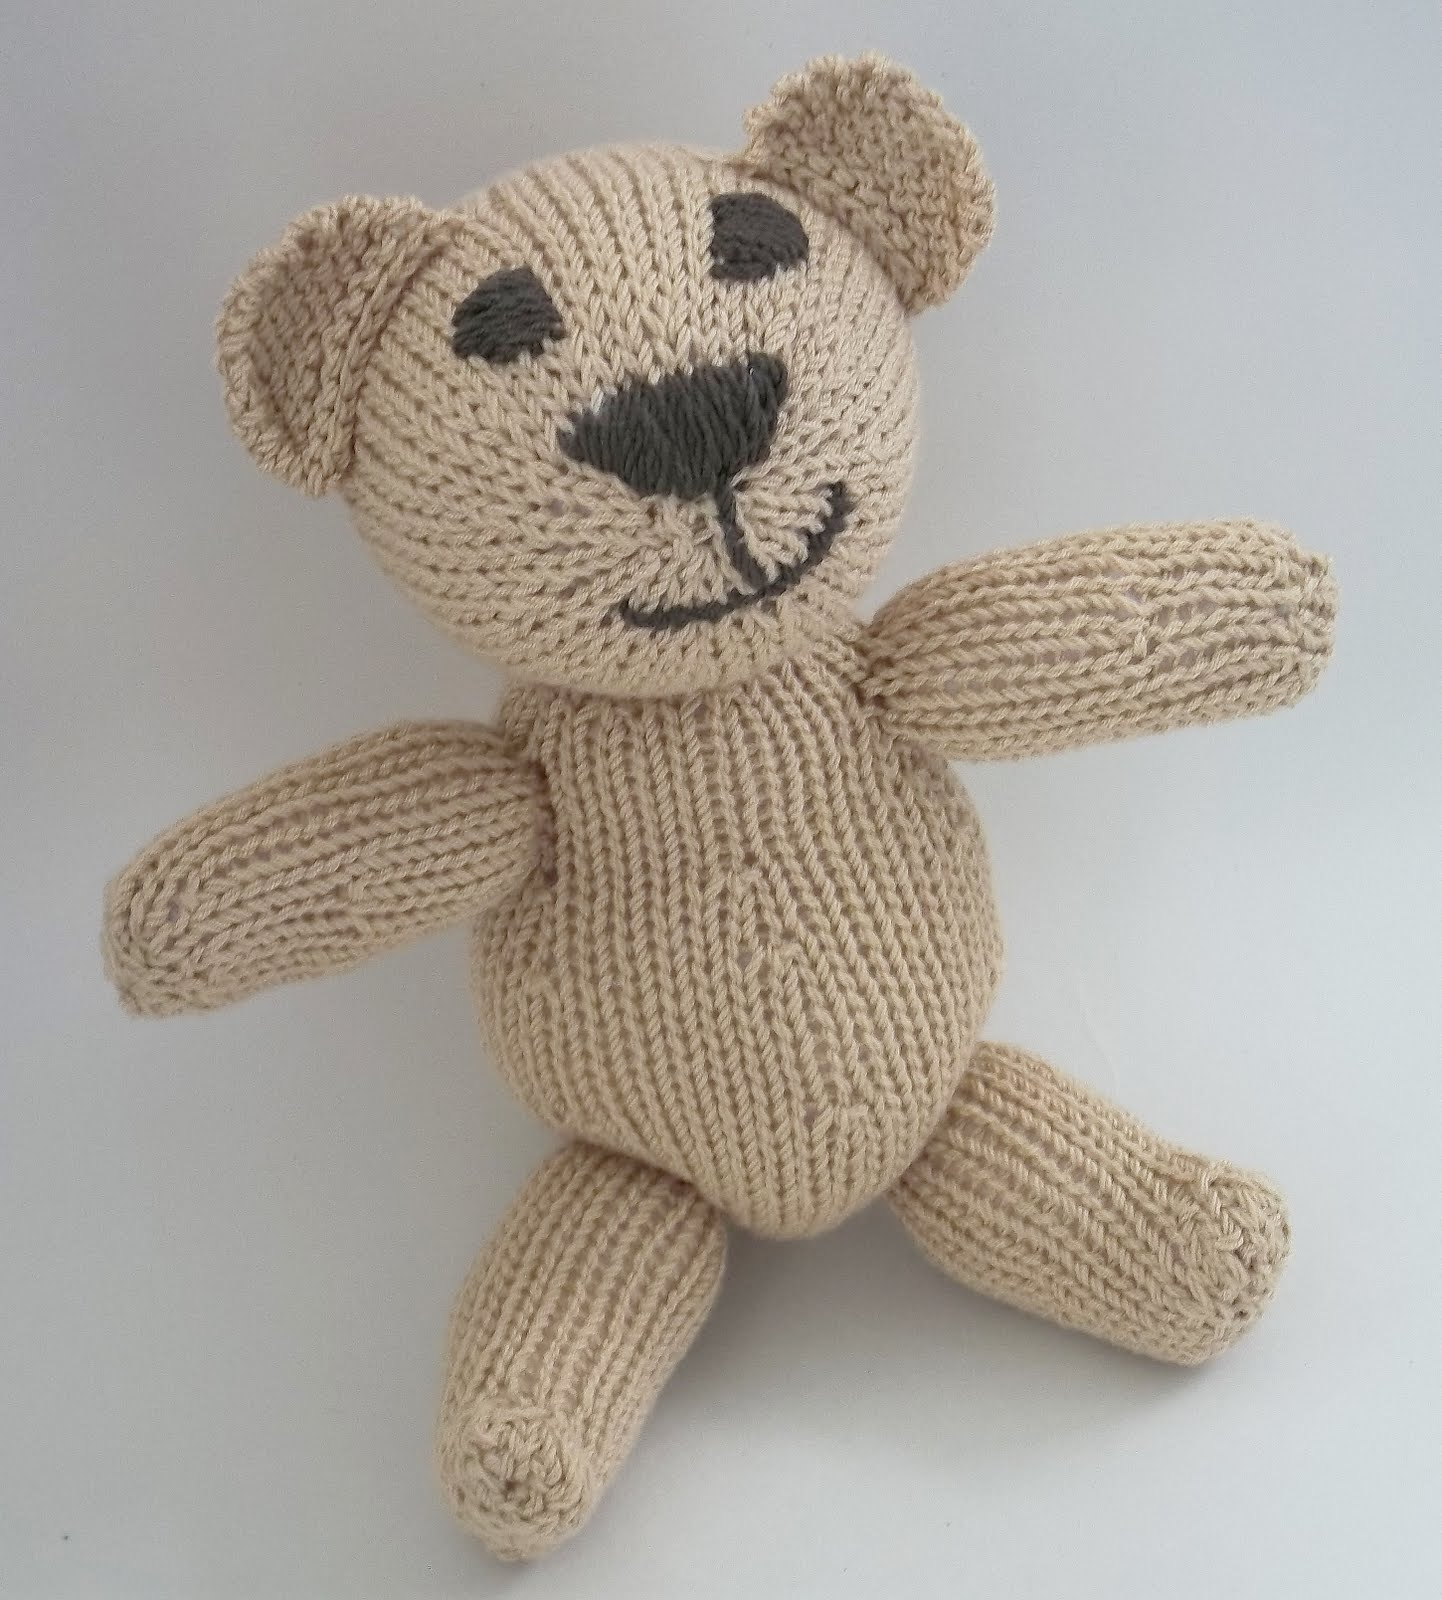 Jumper Knitting Pattern For A Teddy Bear : Teddy Bear. Hand Knitting Pattern